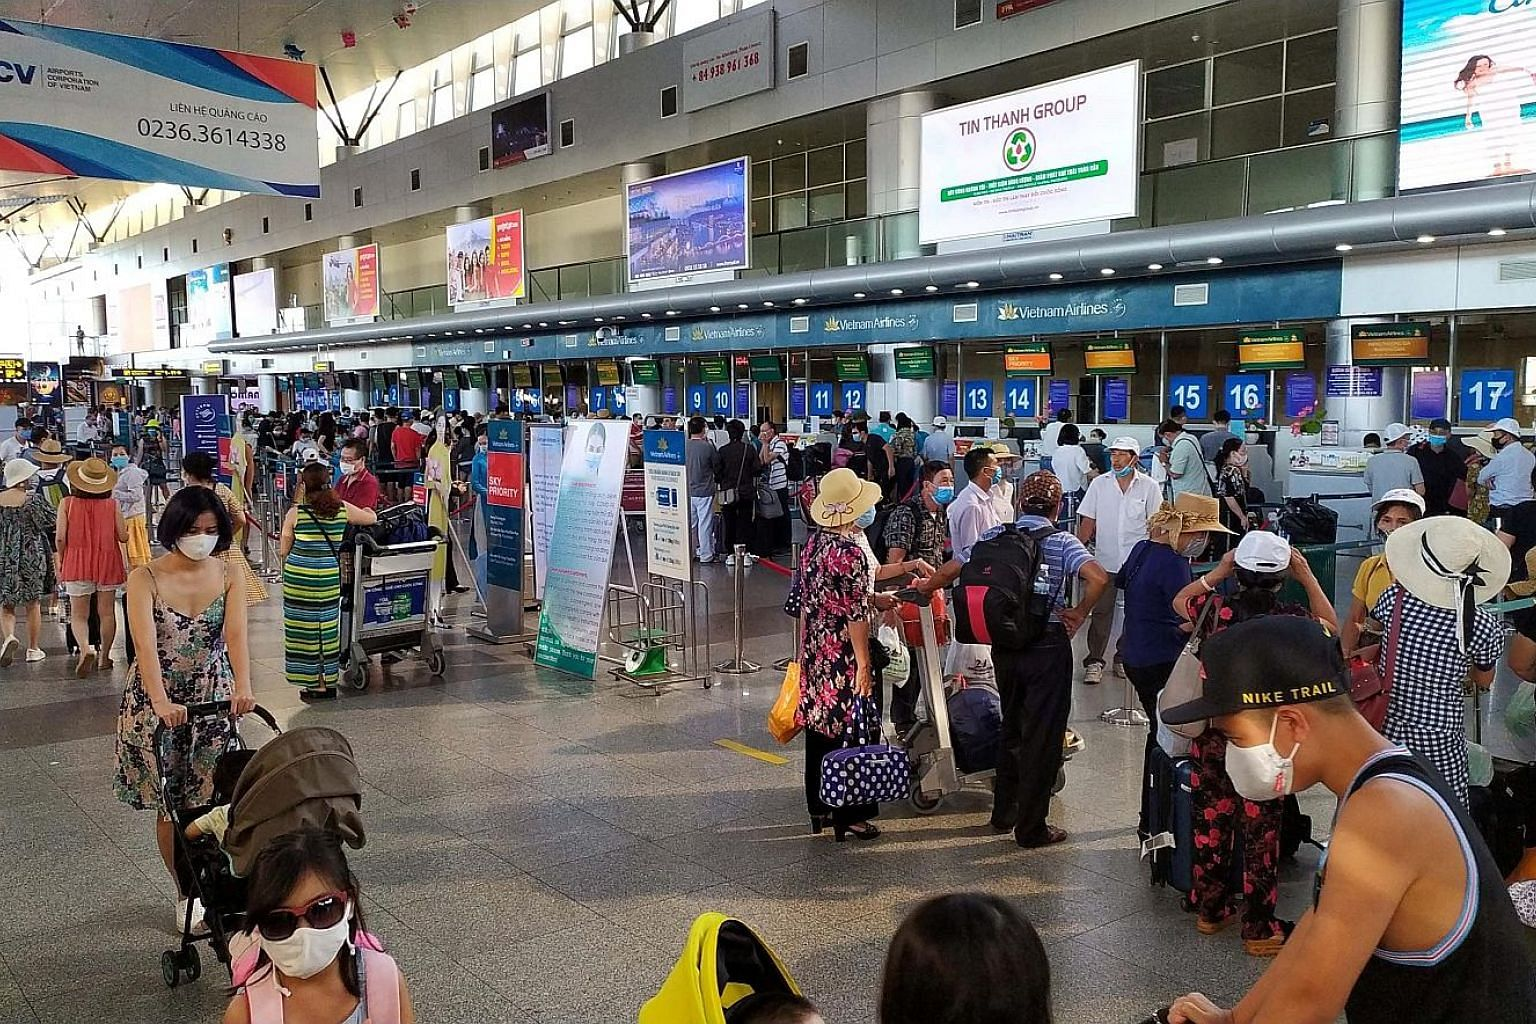 Domestic tourists in protective masks waiting to check-in for departure at Danang's airport on Sunday, as Vietnam imposed new measures to halt the spread of Covid-19. PHOTO: REUTERS